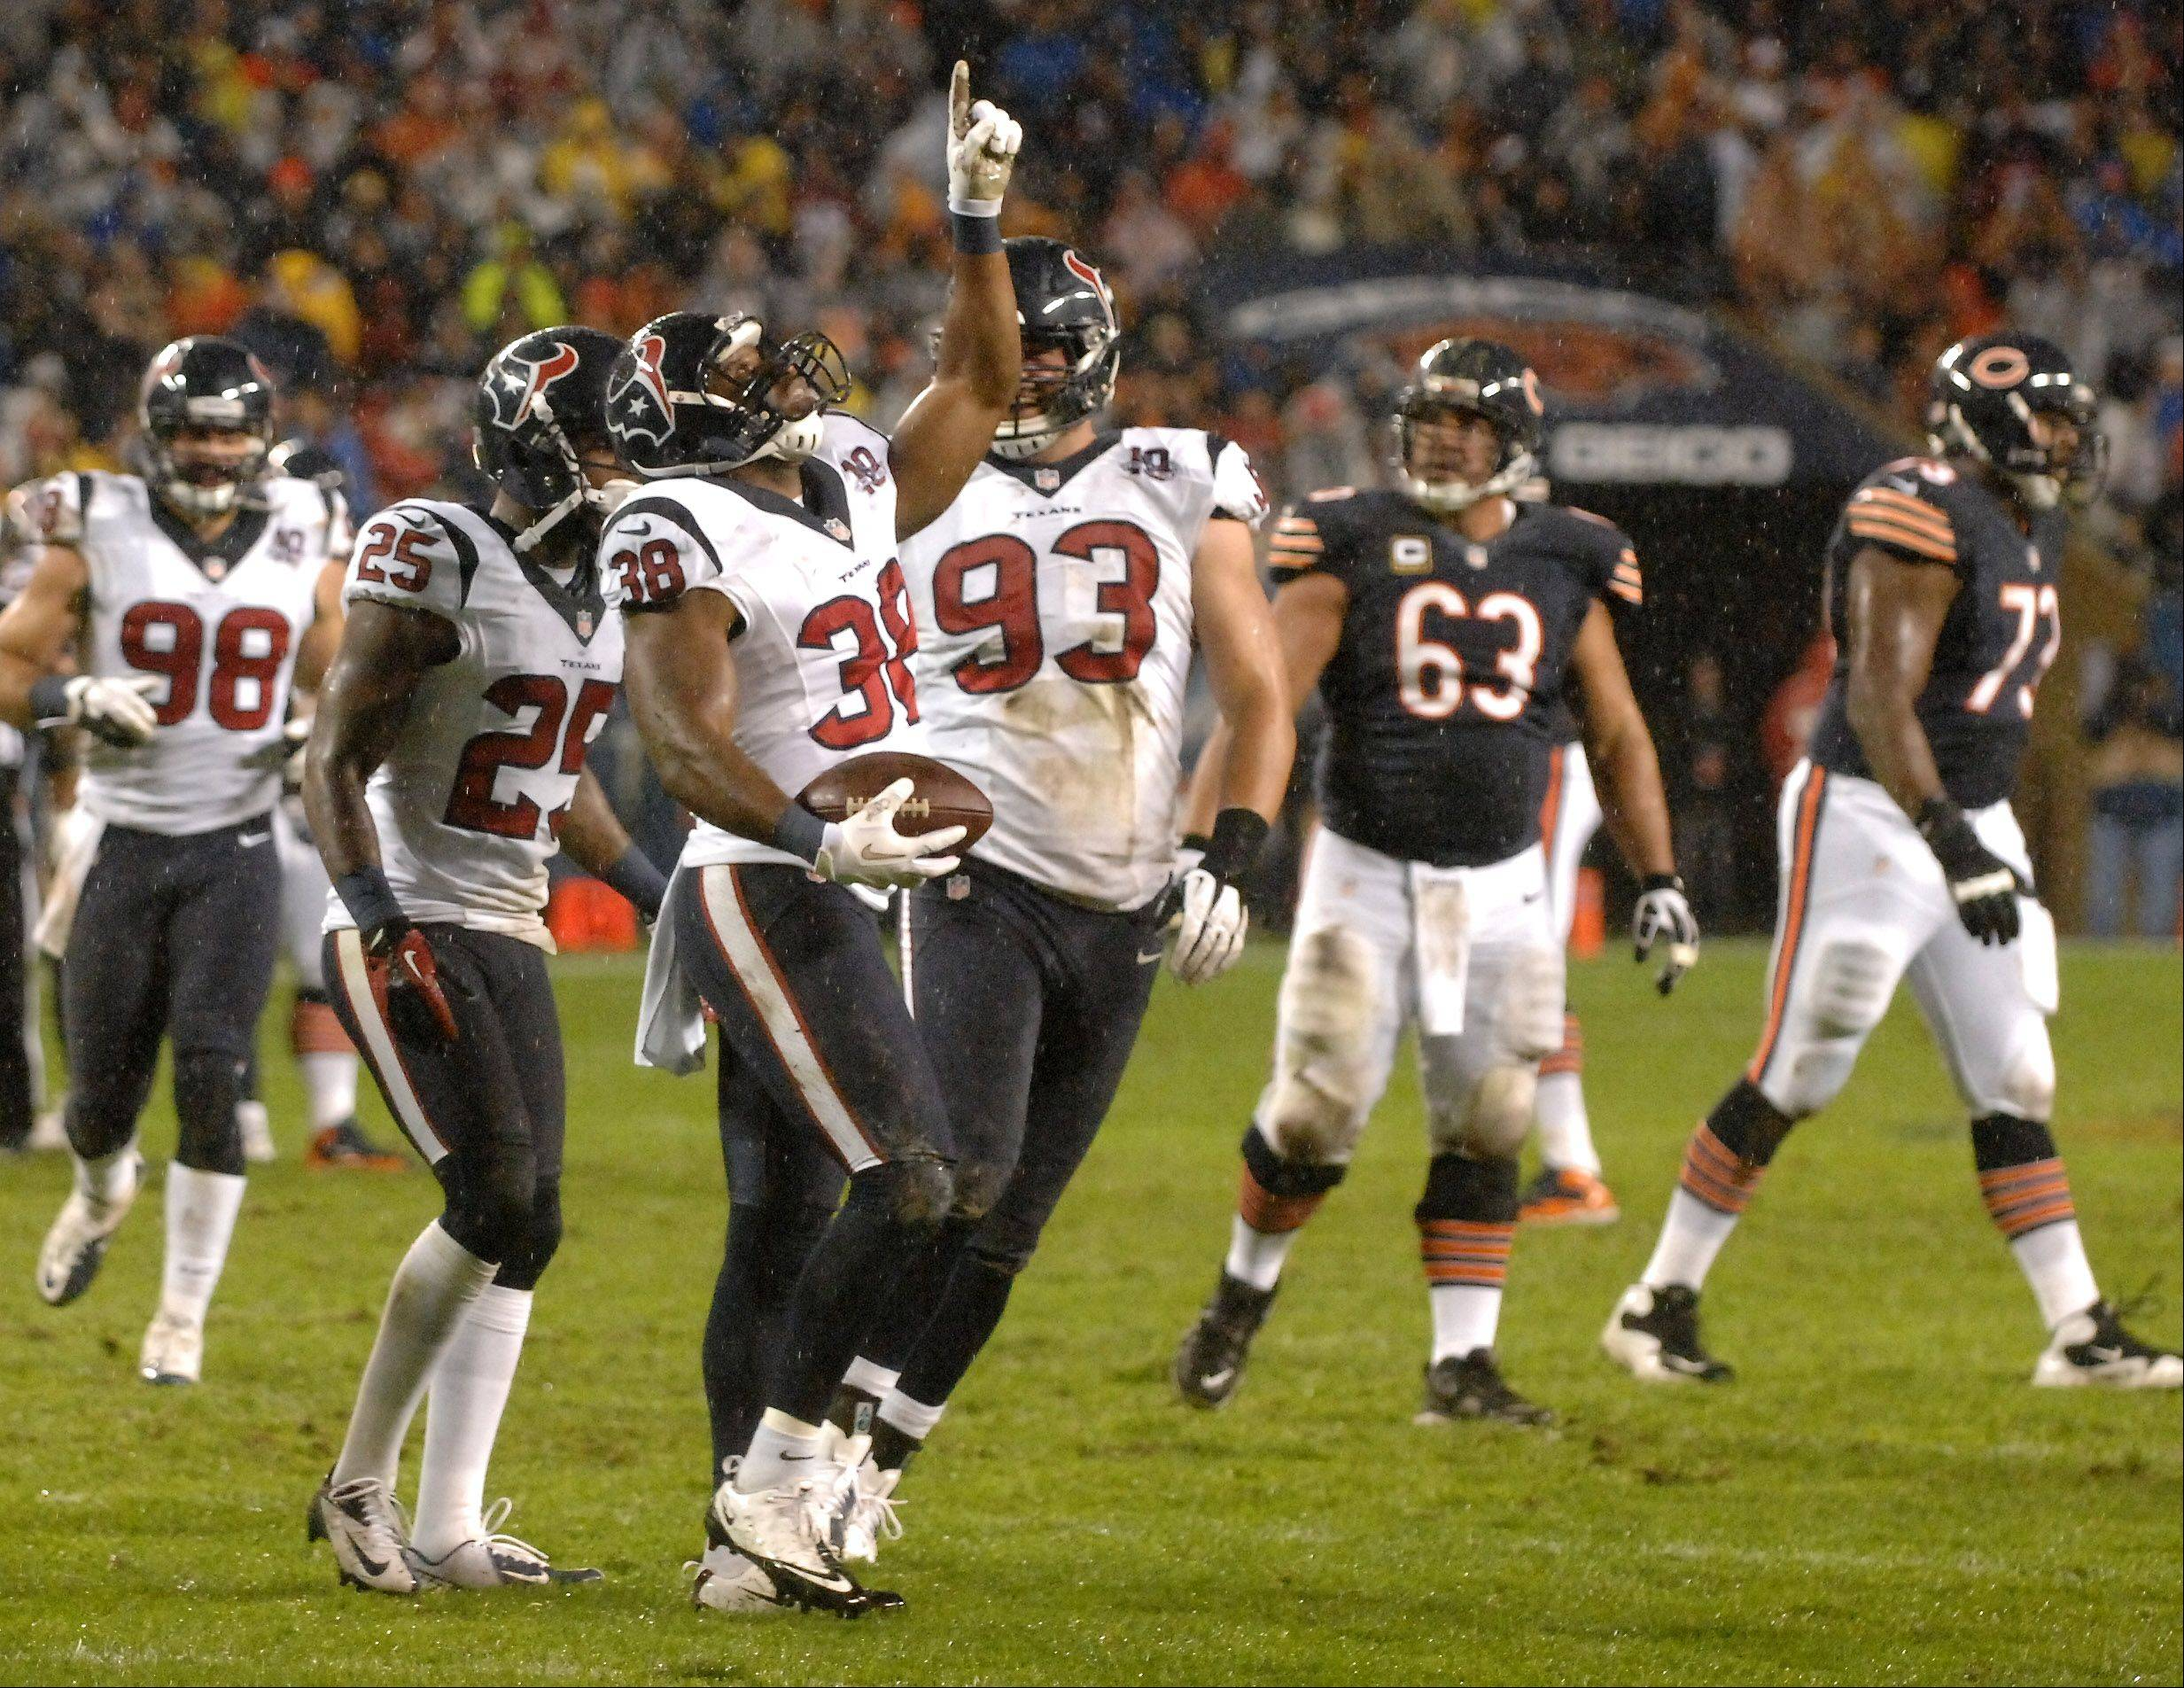 Houston Texans free safety Danieal Manning (38) points skyward after his first quarter interception.